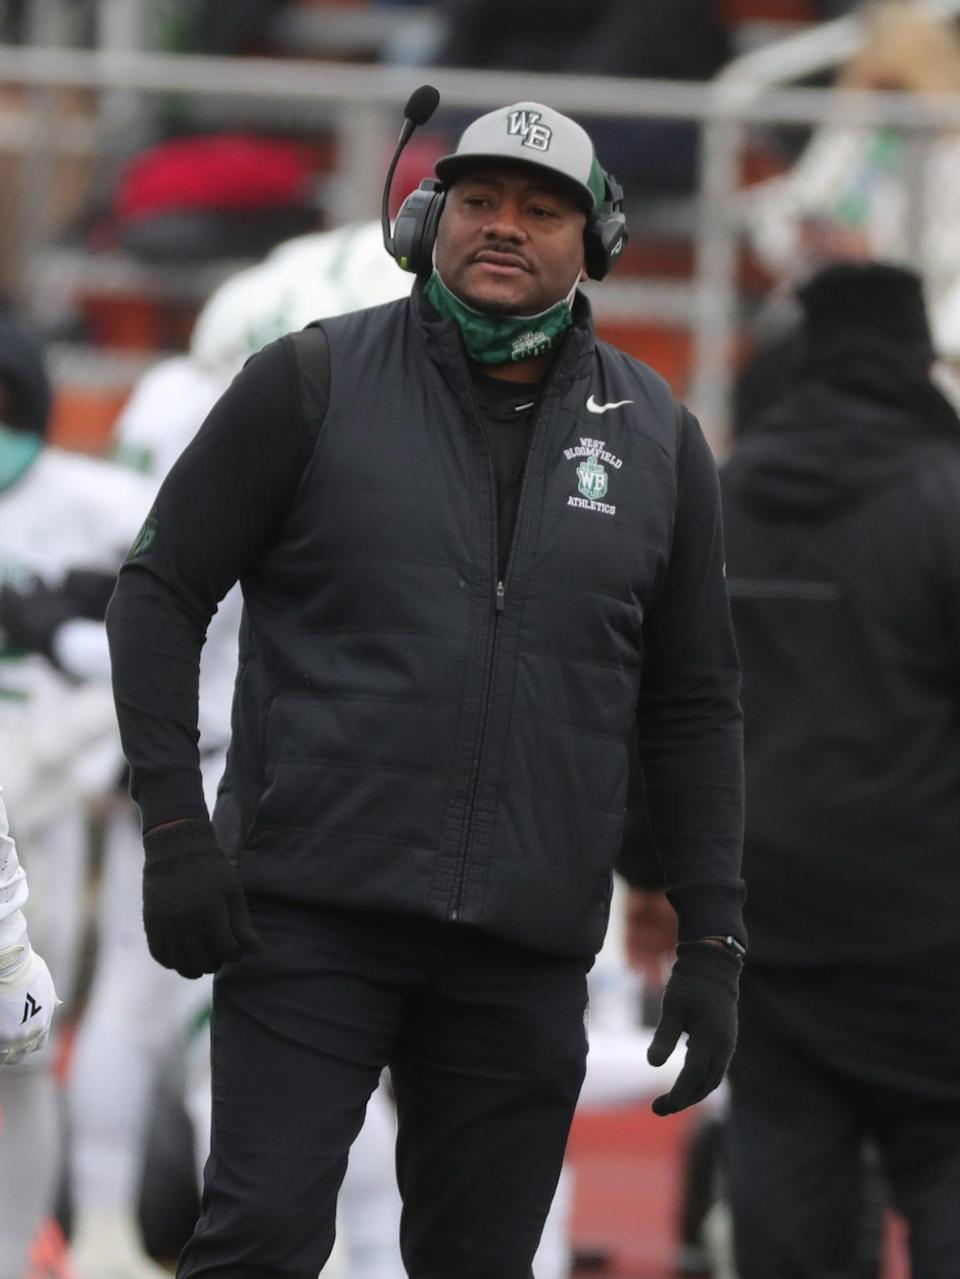 West Bloomfield Lakers head coach Ron Bellamy during action against the Belleville Tigers in the MHSAA Division 1 semifinals Saturday, Jan. 16, 2021.